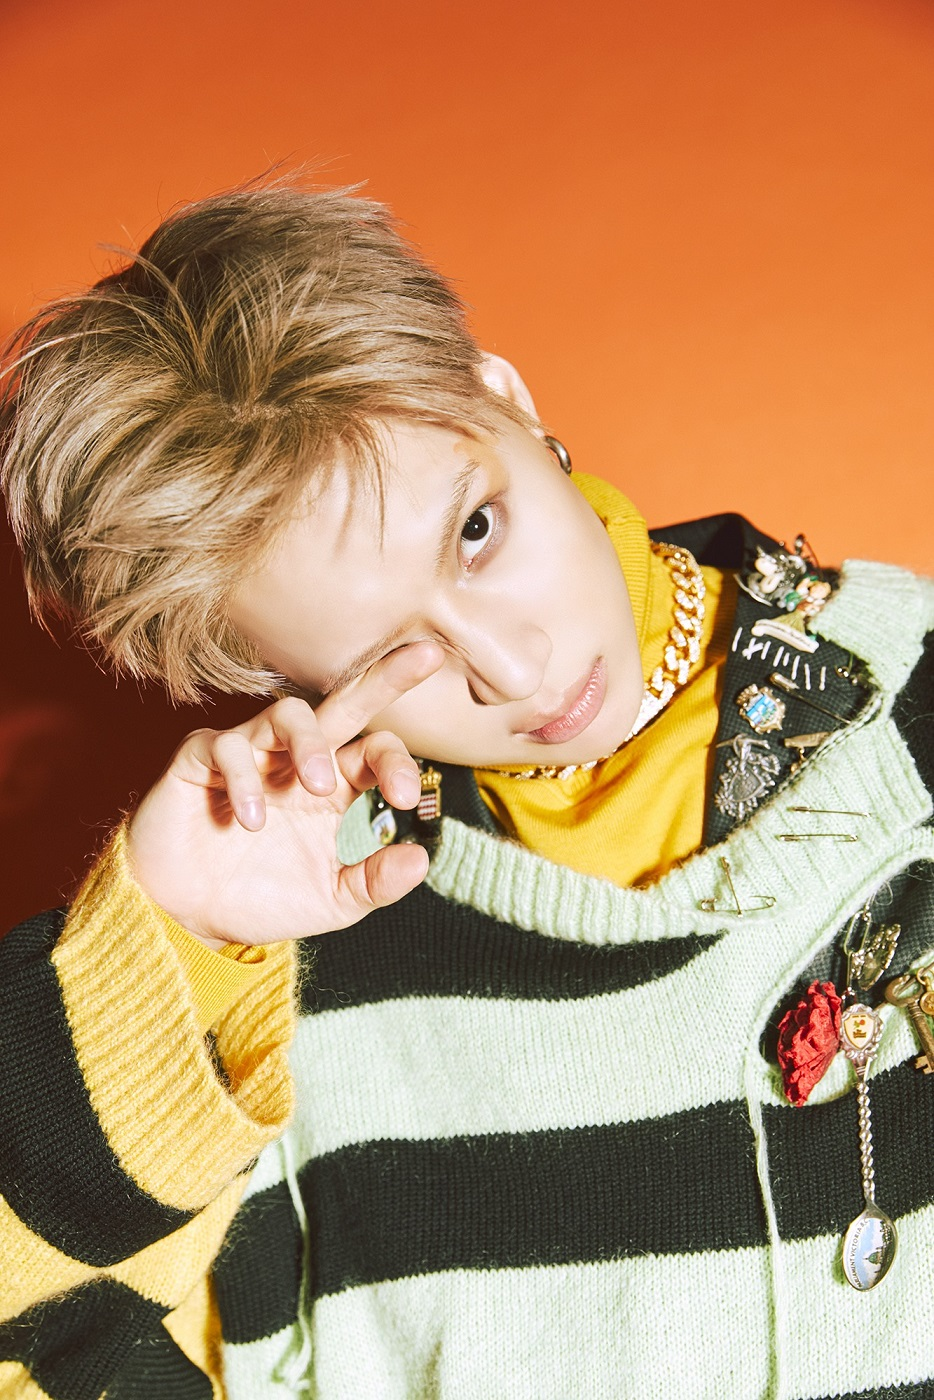 [Prologue Single '2 KIDS'_Image 4] TAEMIN - The 3rd Album 'Never Gonna Dance Again'